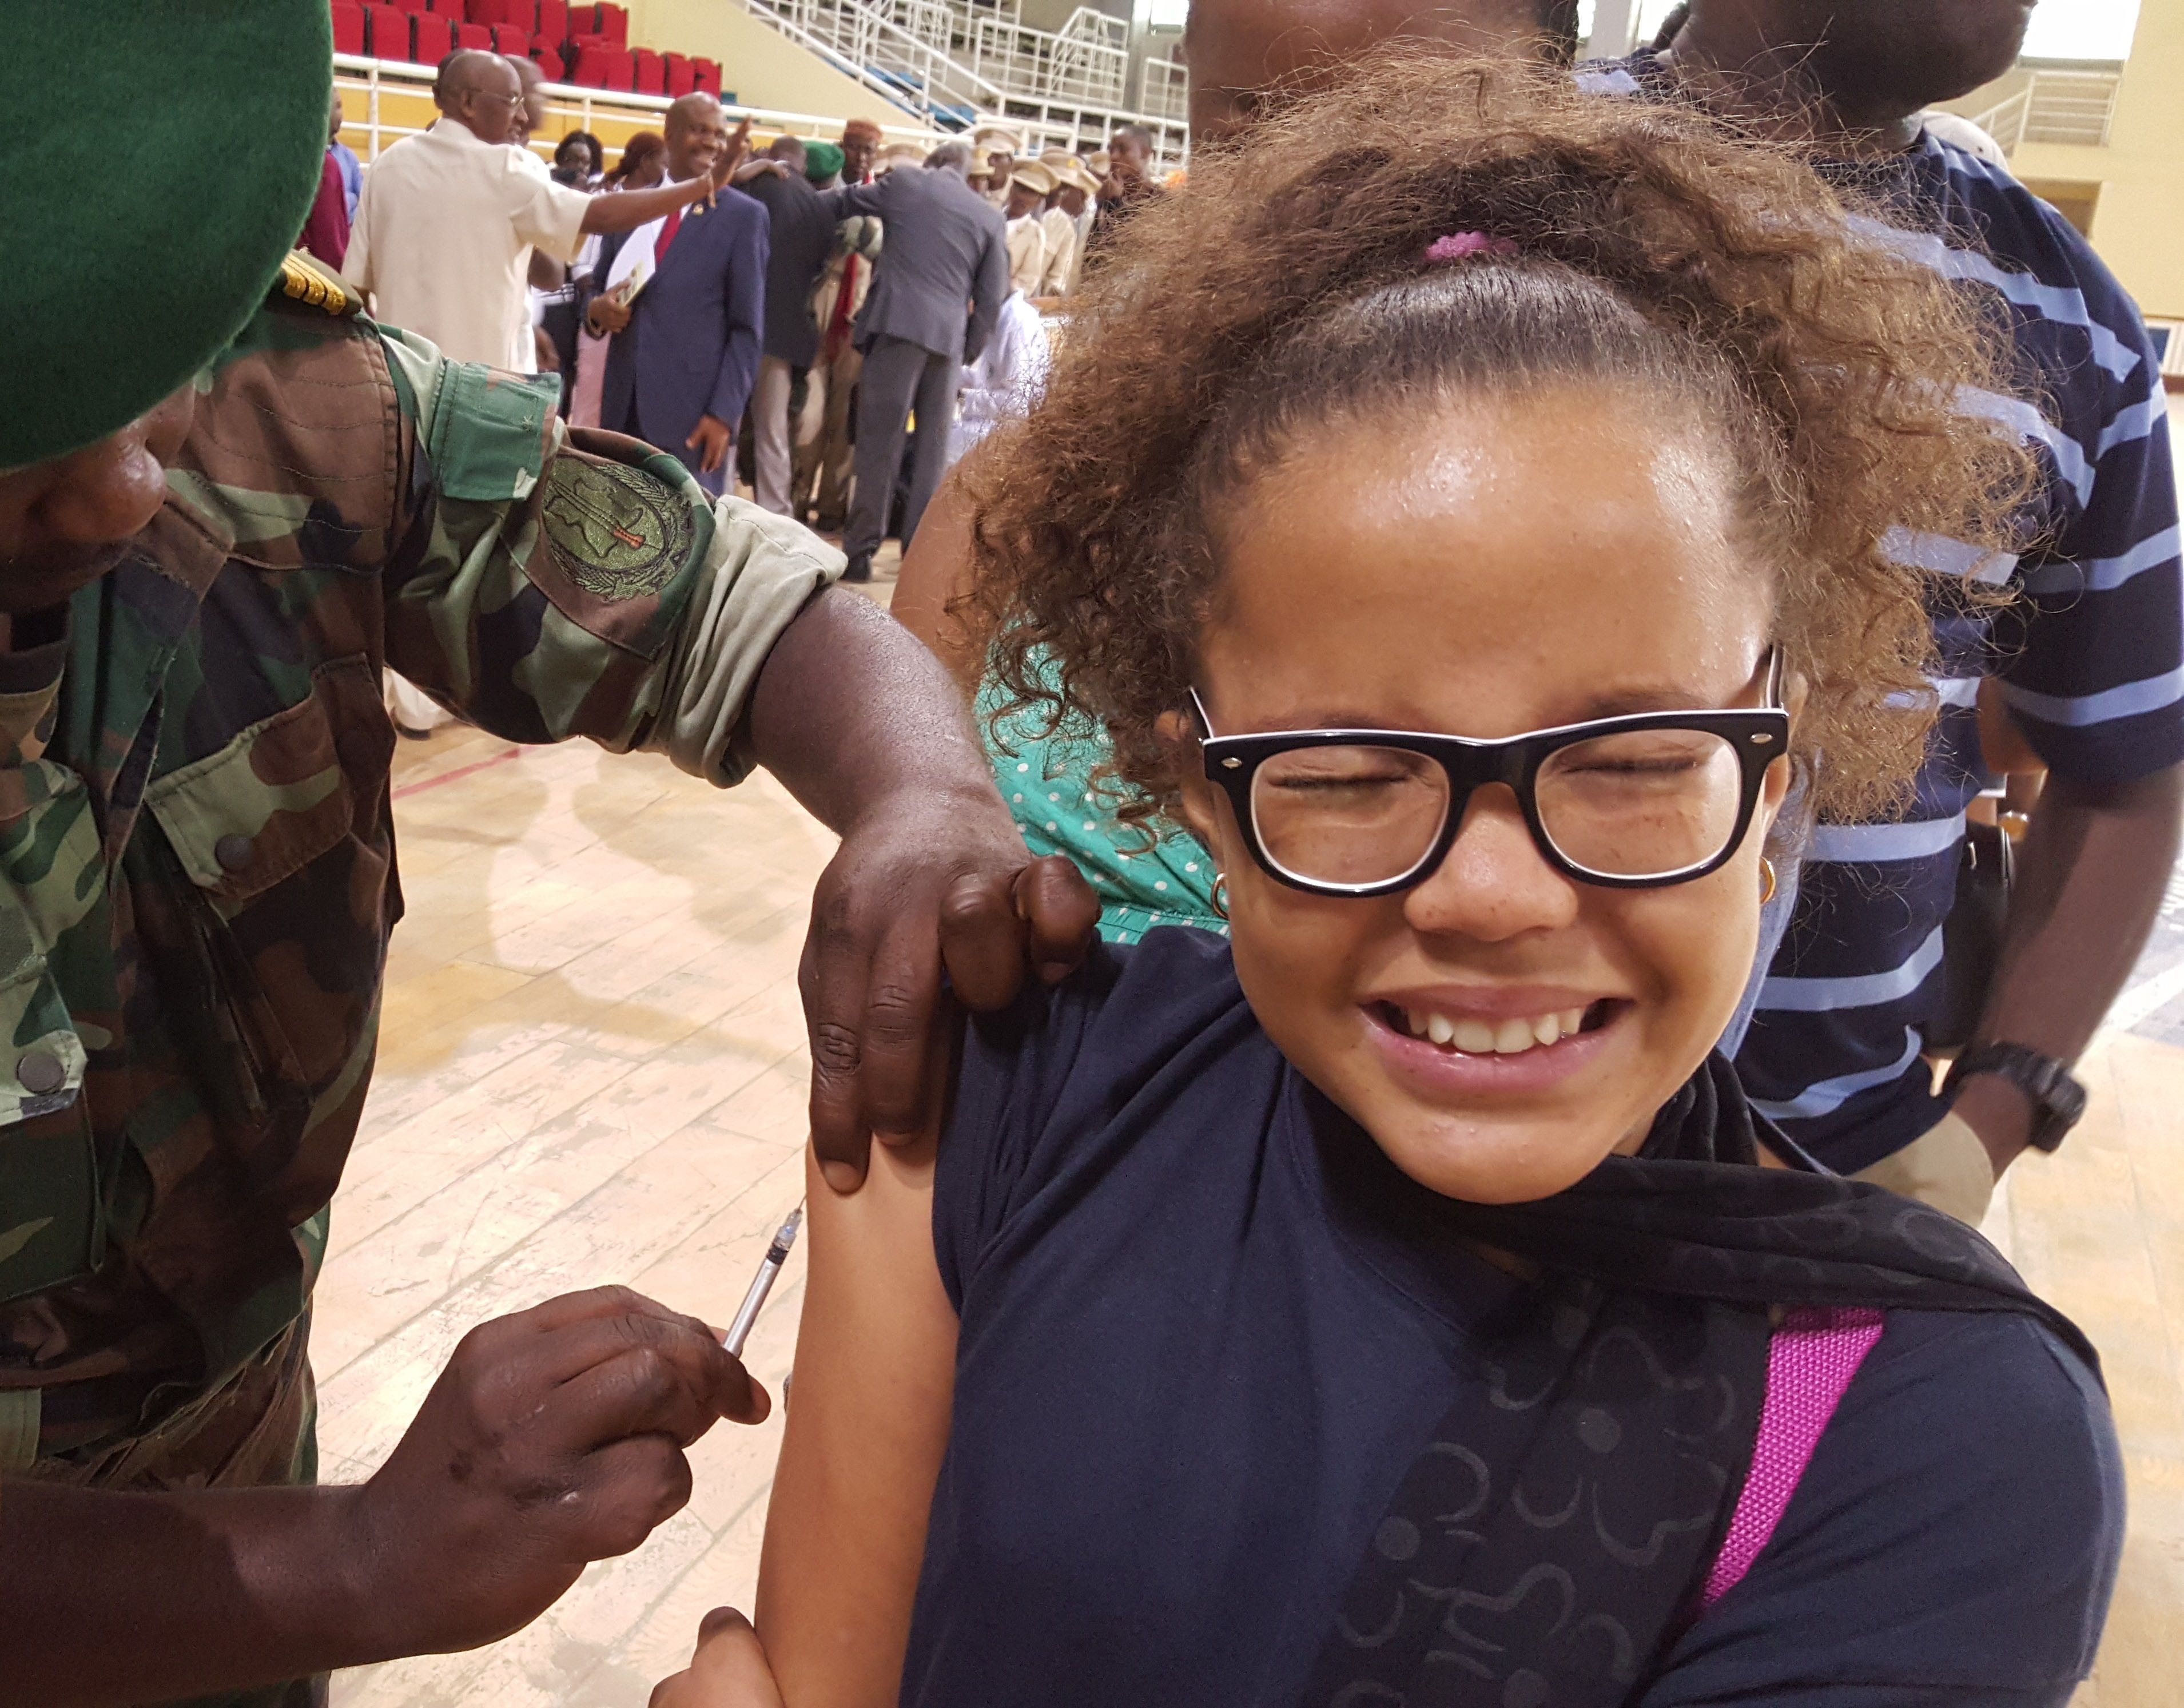 The face of a young woman receiving an injection.